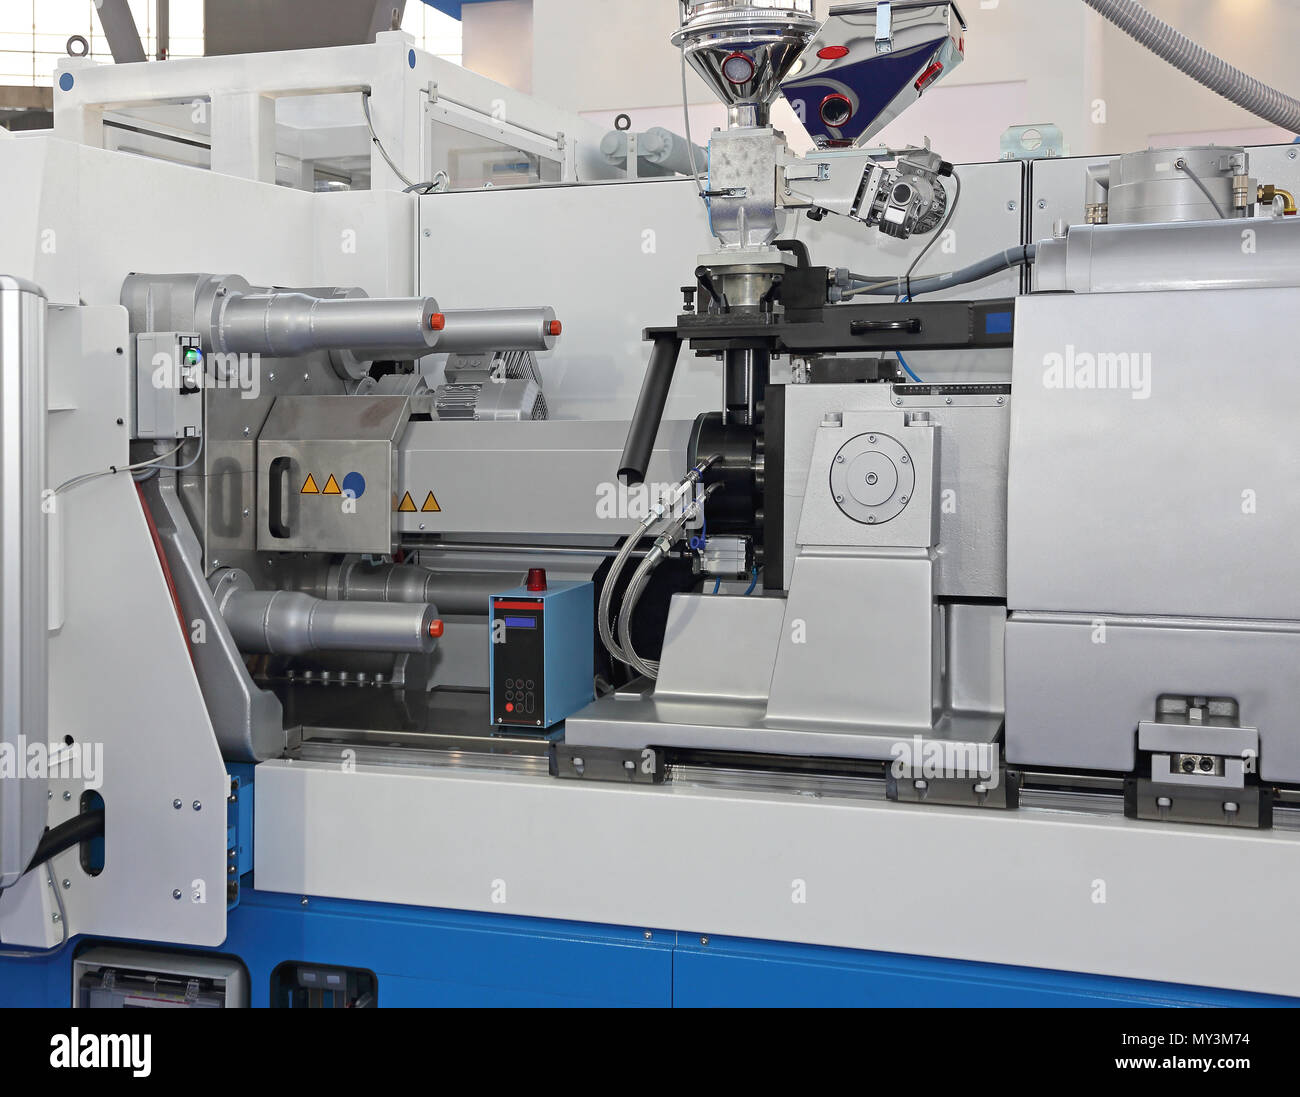 Injection Molding Machine for Plastic Parts Production - Stock Image